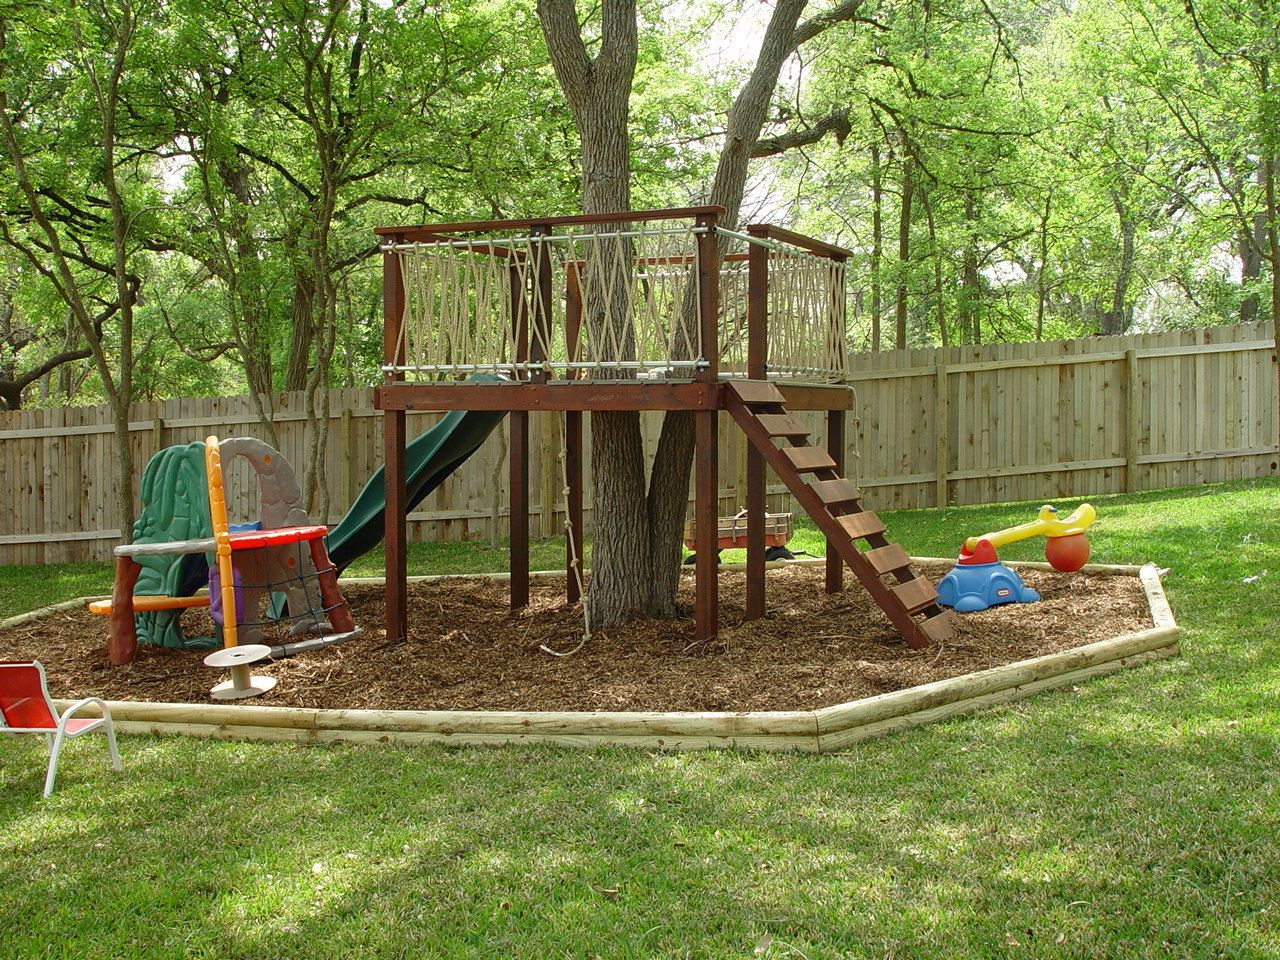 Trying To Find An Easy But Cool Tree House To Build For Our Three Buddies,